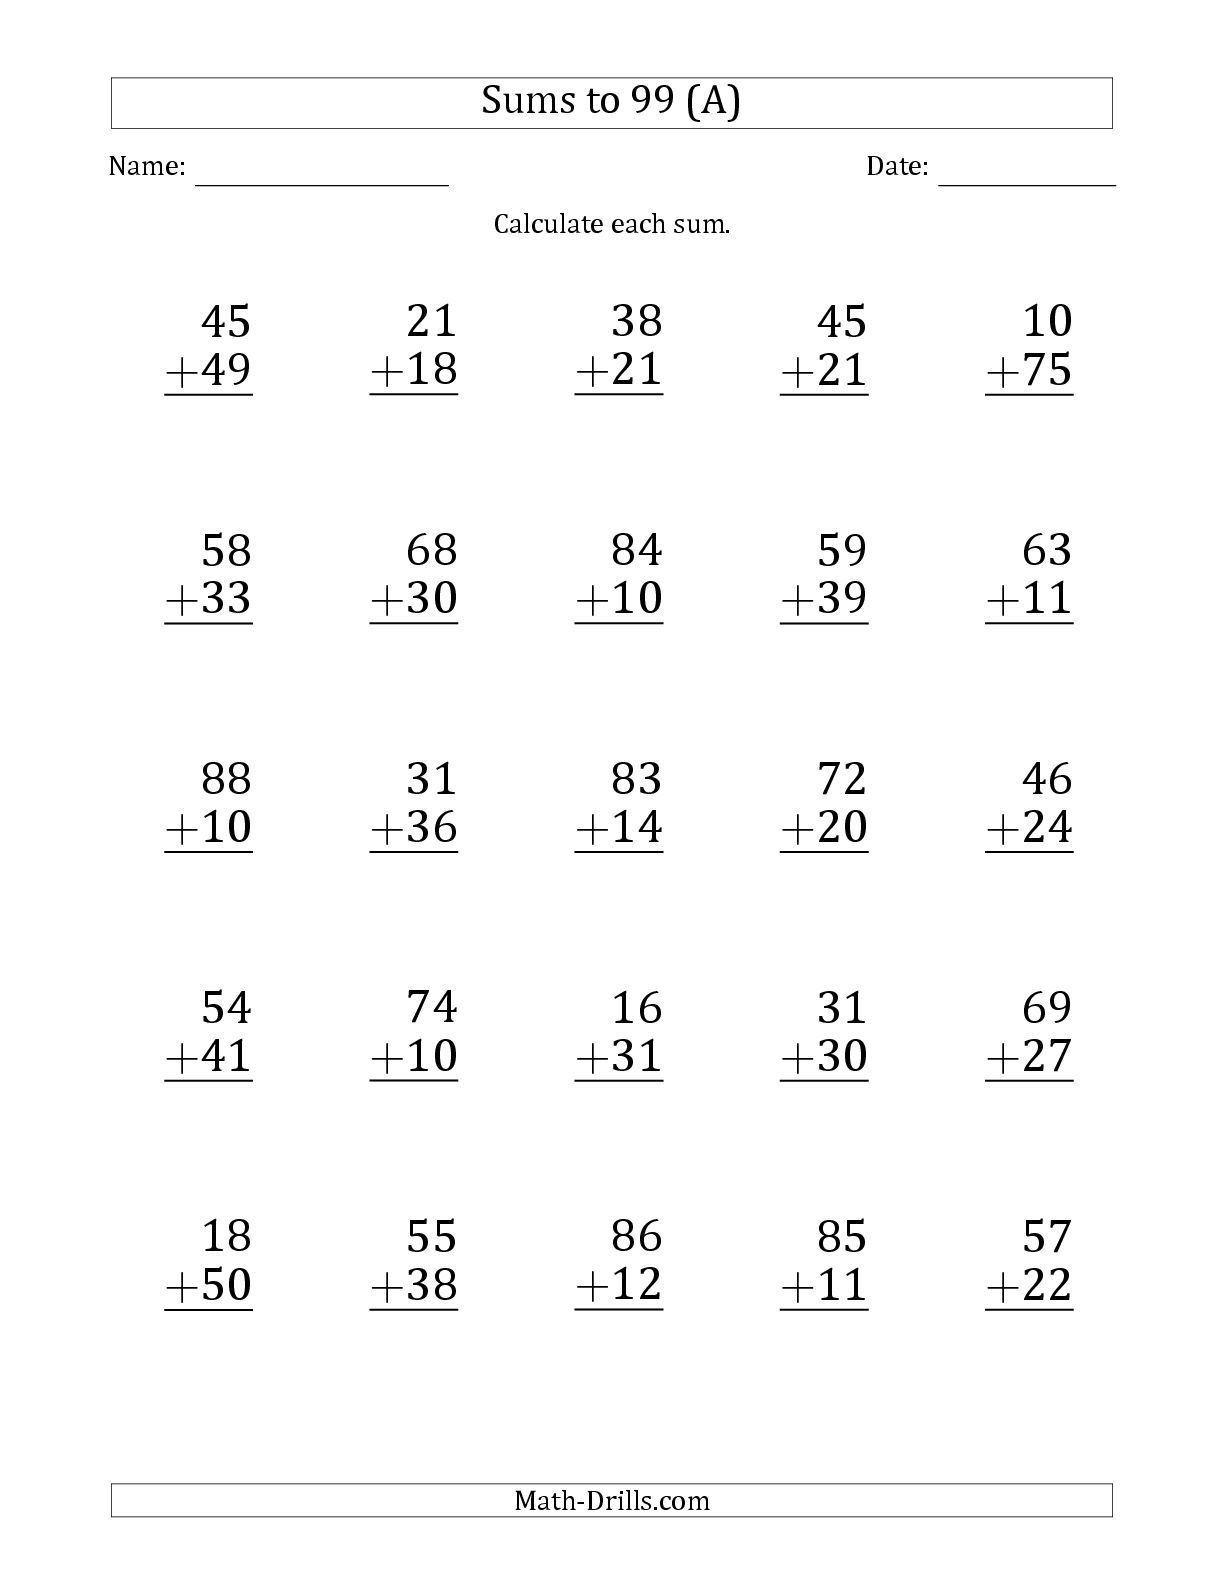 hight resolution of The Large Print - Adding 2-Digit Numbers with Sums up to 99 (25 Questions)  (A) math worksheet from the…   Math worksheets